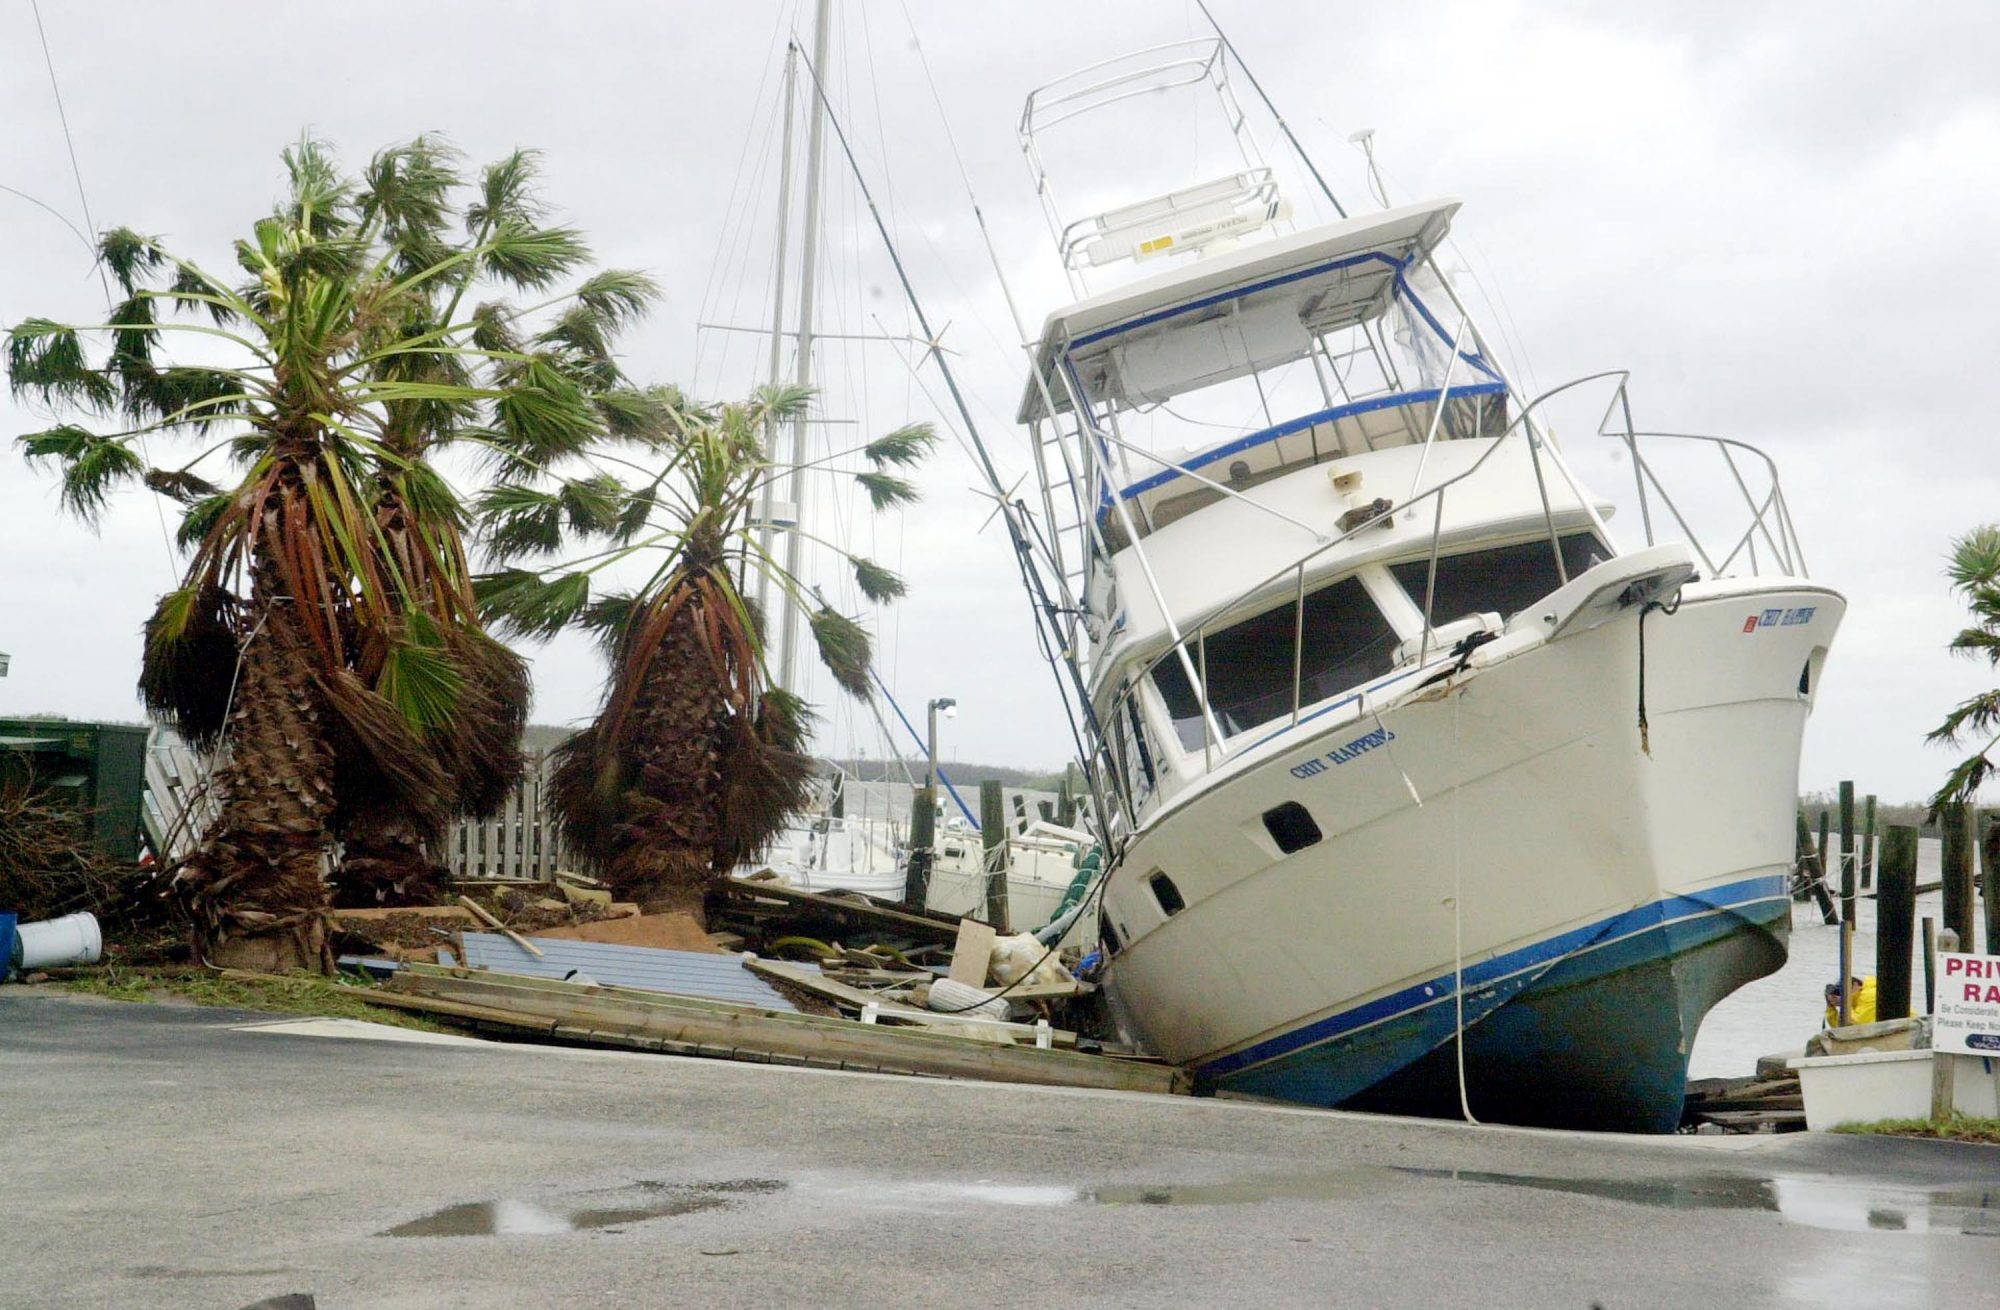 Hurricane Jeanne was a Category 3 hurricane when it hit the central part of Florida's east coast in late September 2004. Jeanne is known as the deadliest of the 2004 Atlantic hurricanes—it caused 3,000 or more deaths in Haiti alone. Cost: $7.66 billion